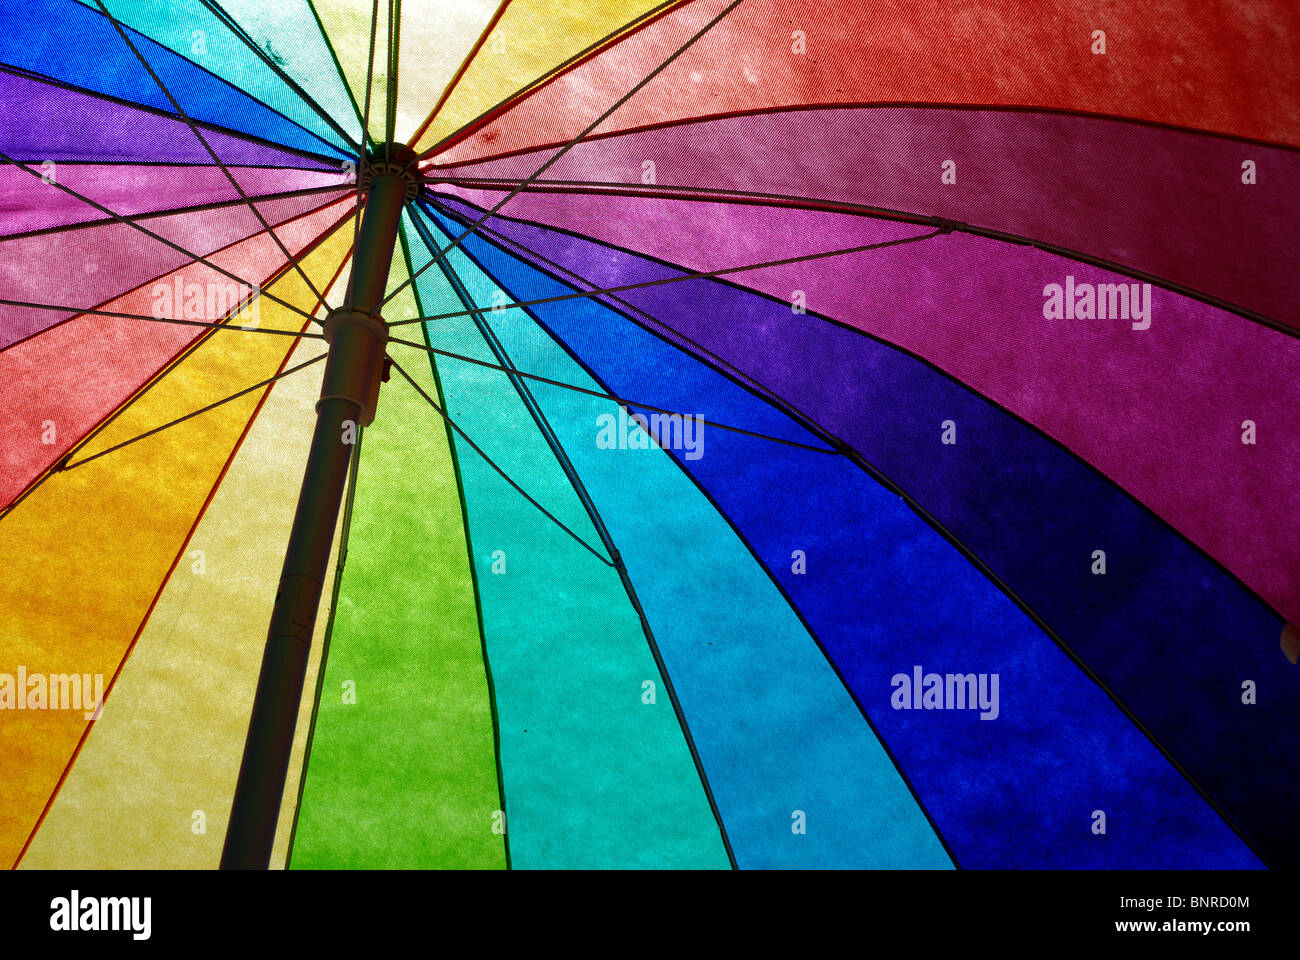 Rainbow colored sun umbrella at the beach against clear blue sky. - Stock Image